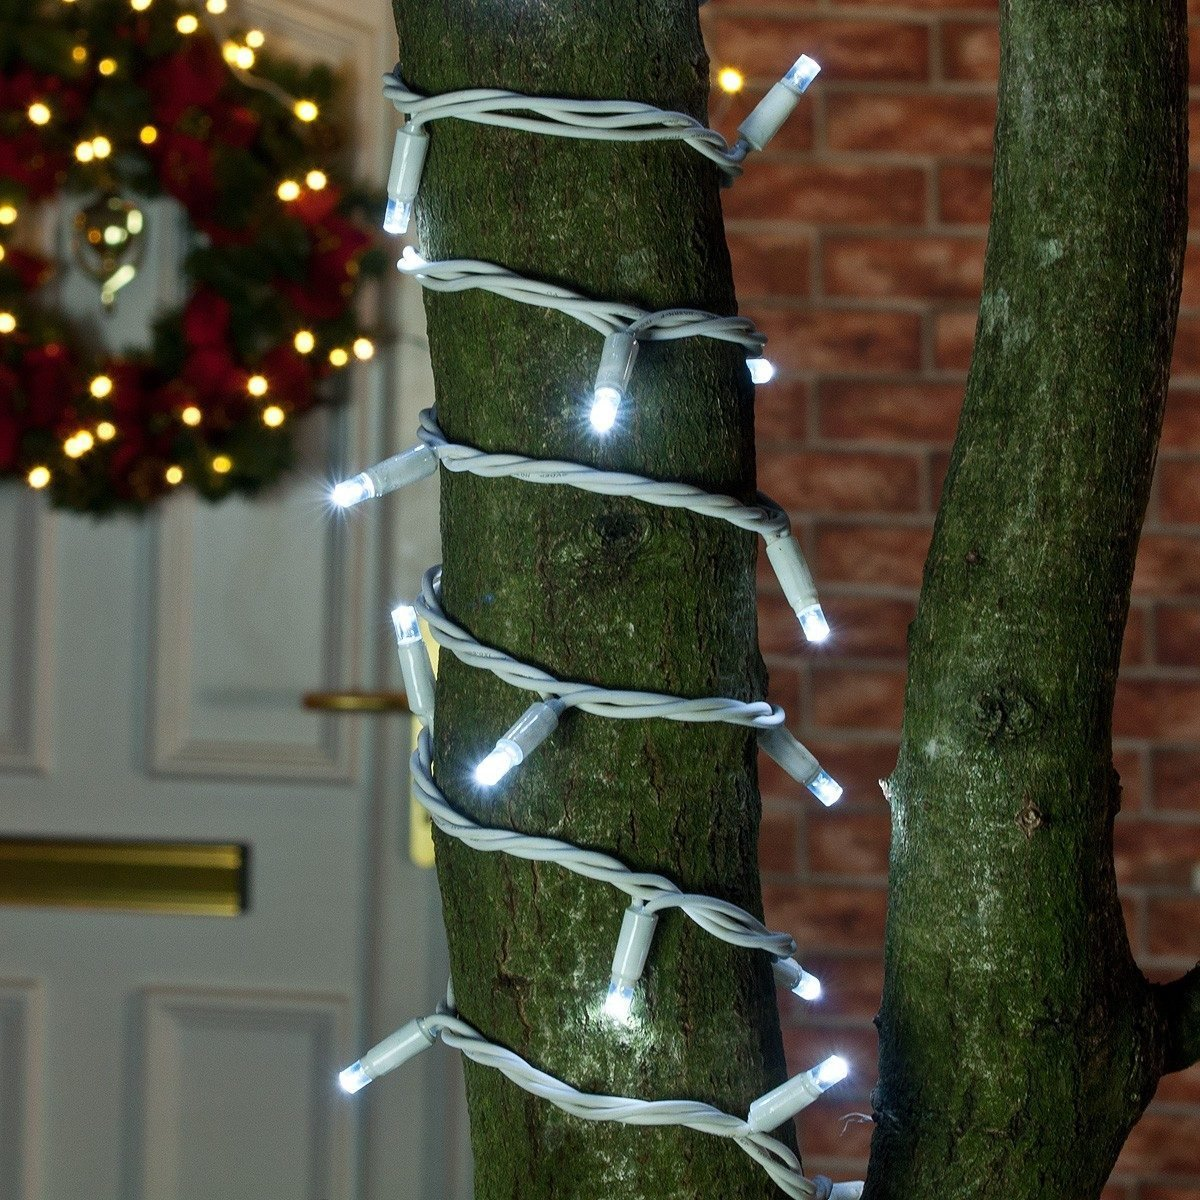 ConnectPro MV032 5m White Outdoor LED String Lights, Connectable, White Rubber Cable